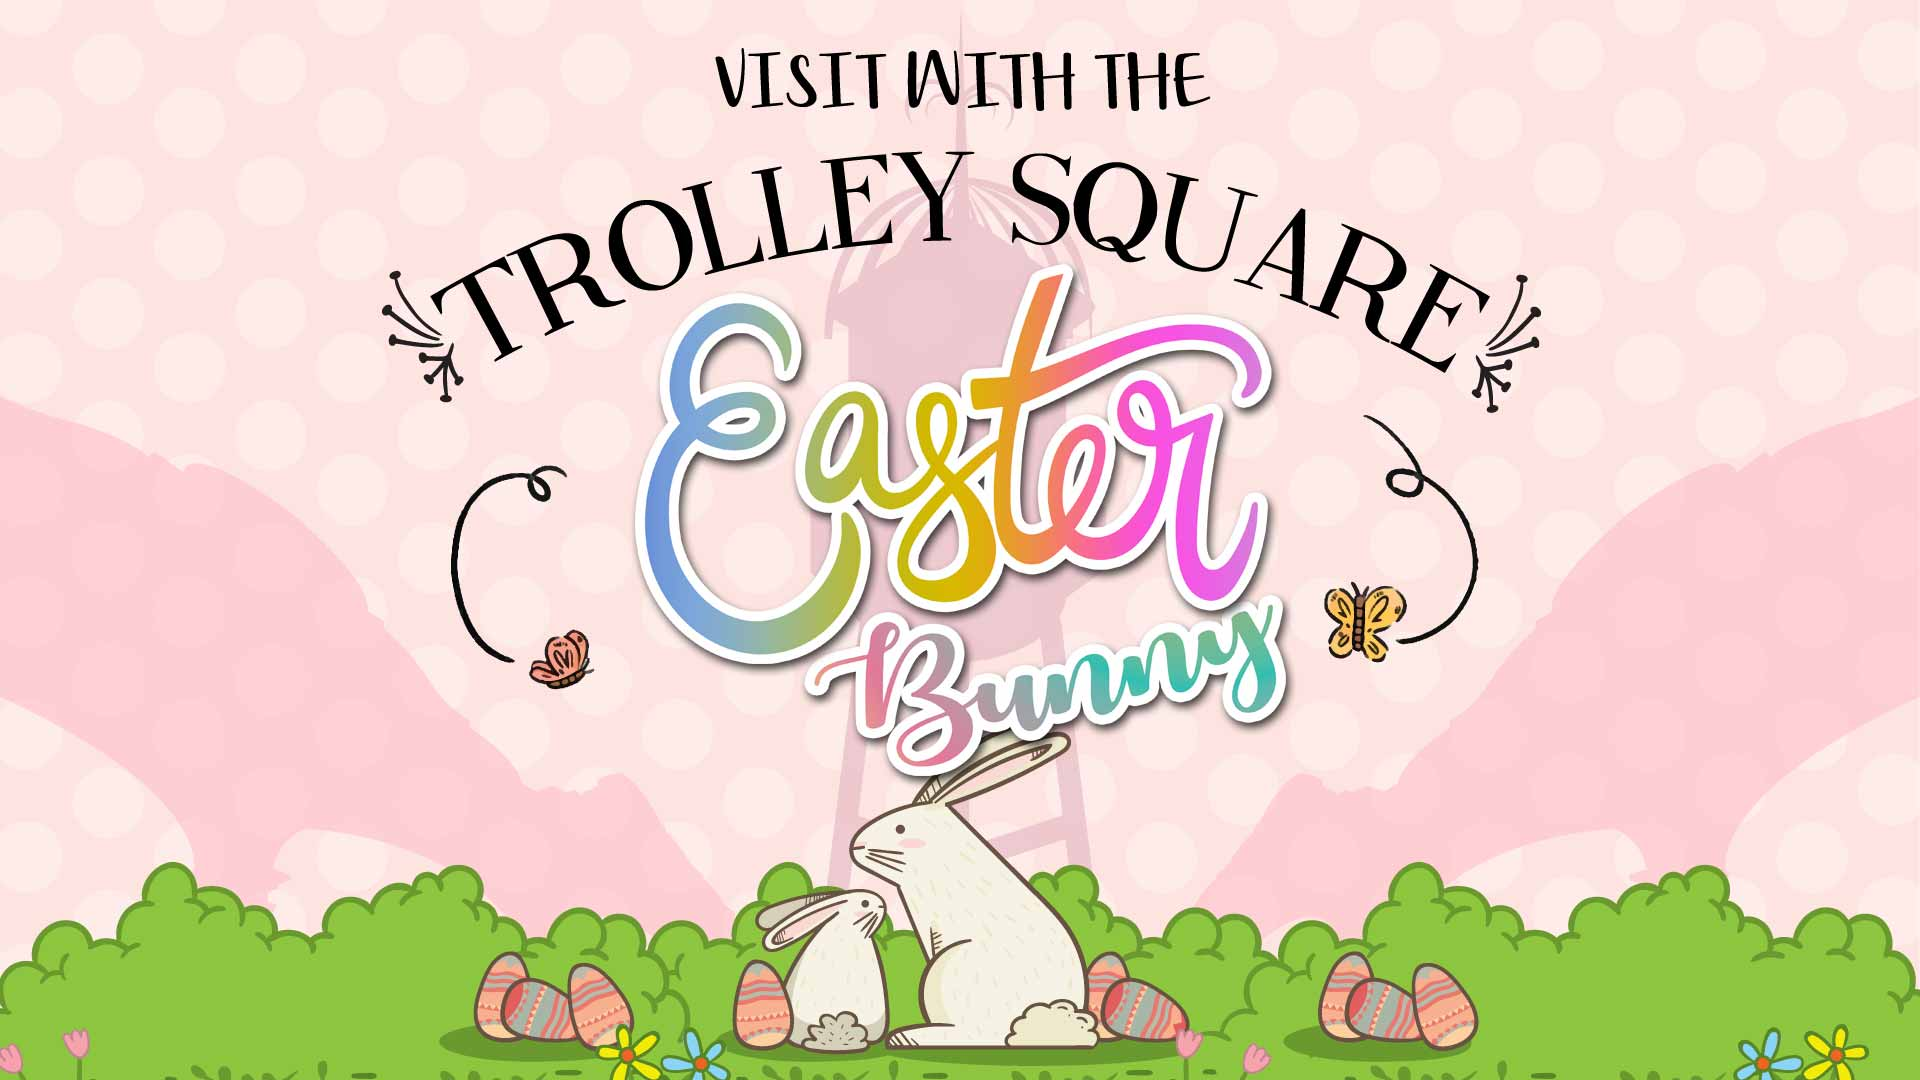 Visit with the Trolley Square Easter Bunny